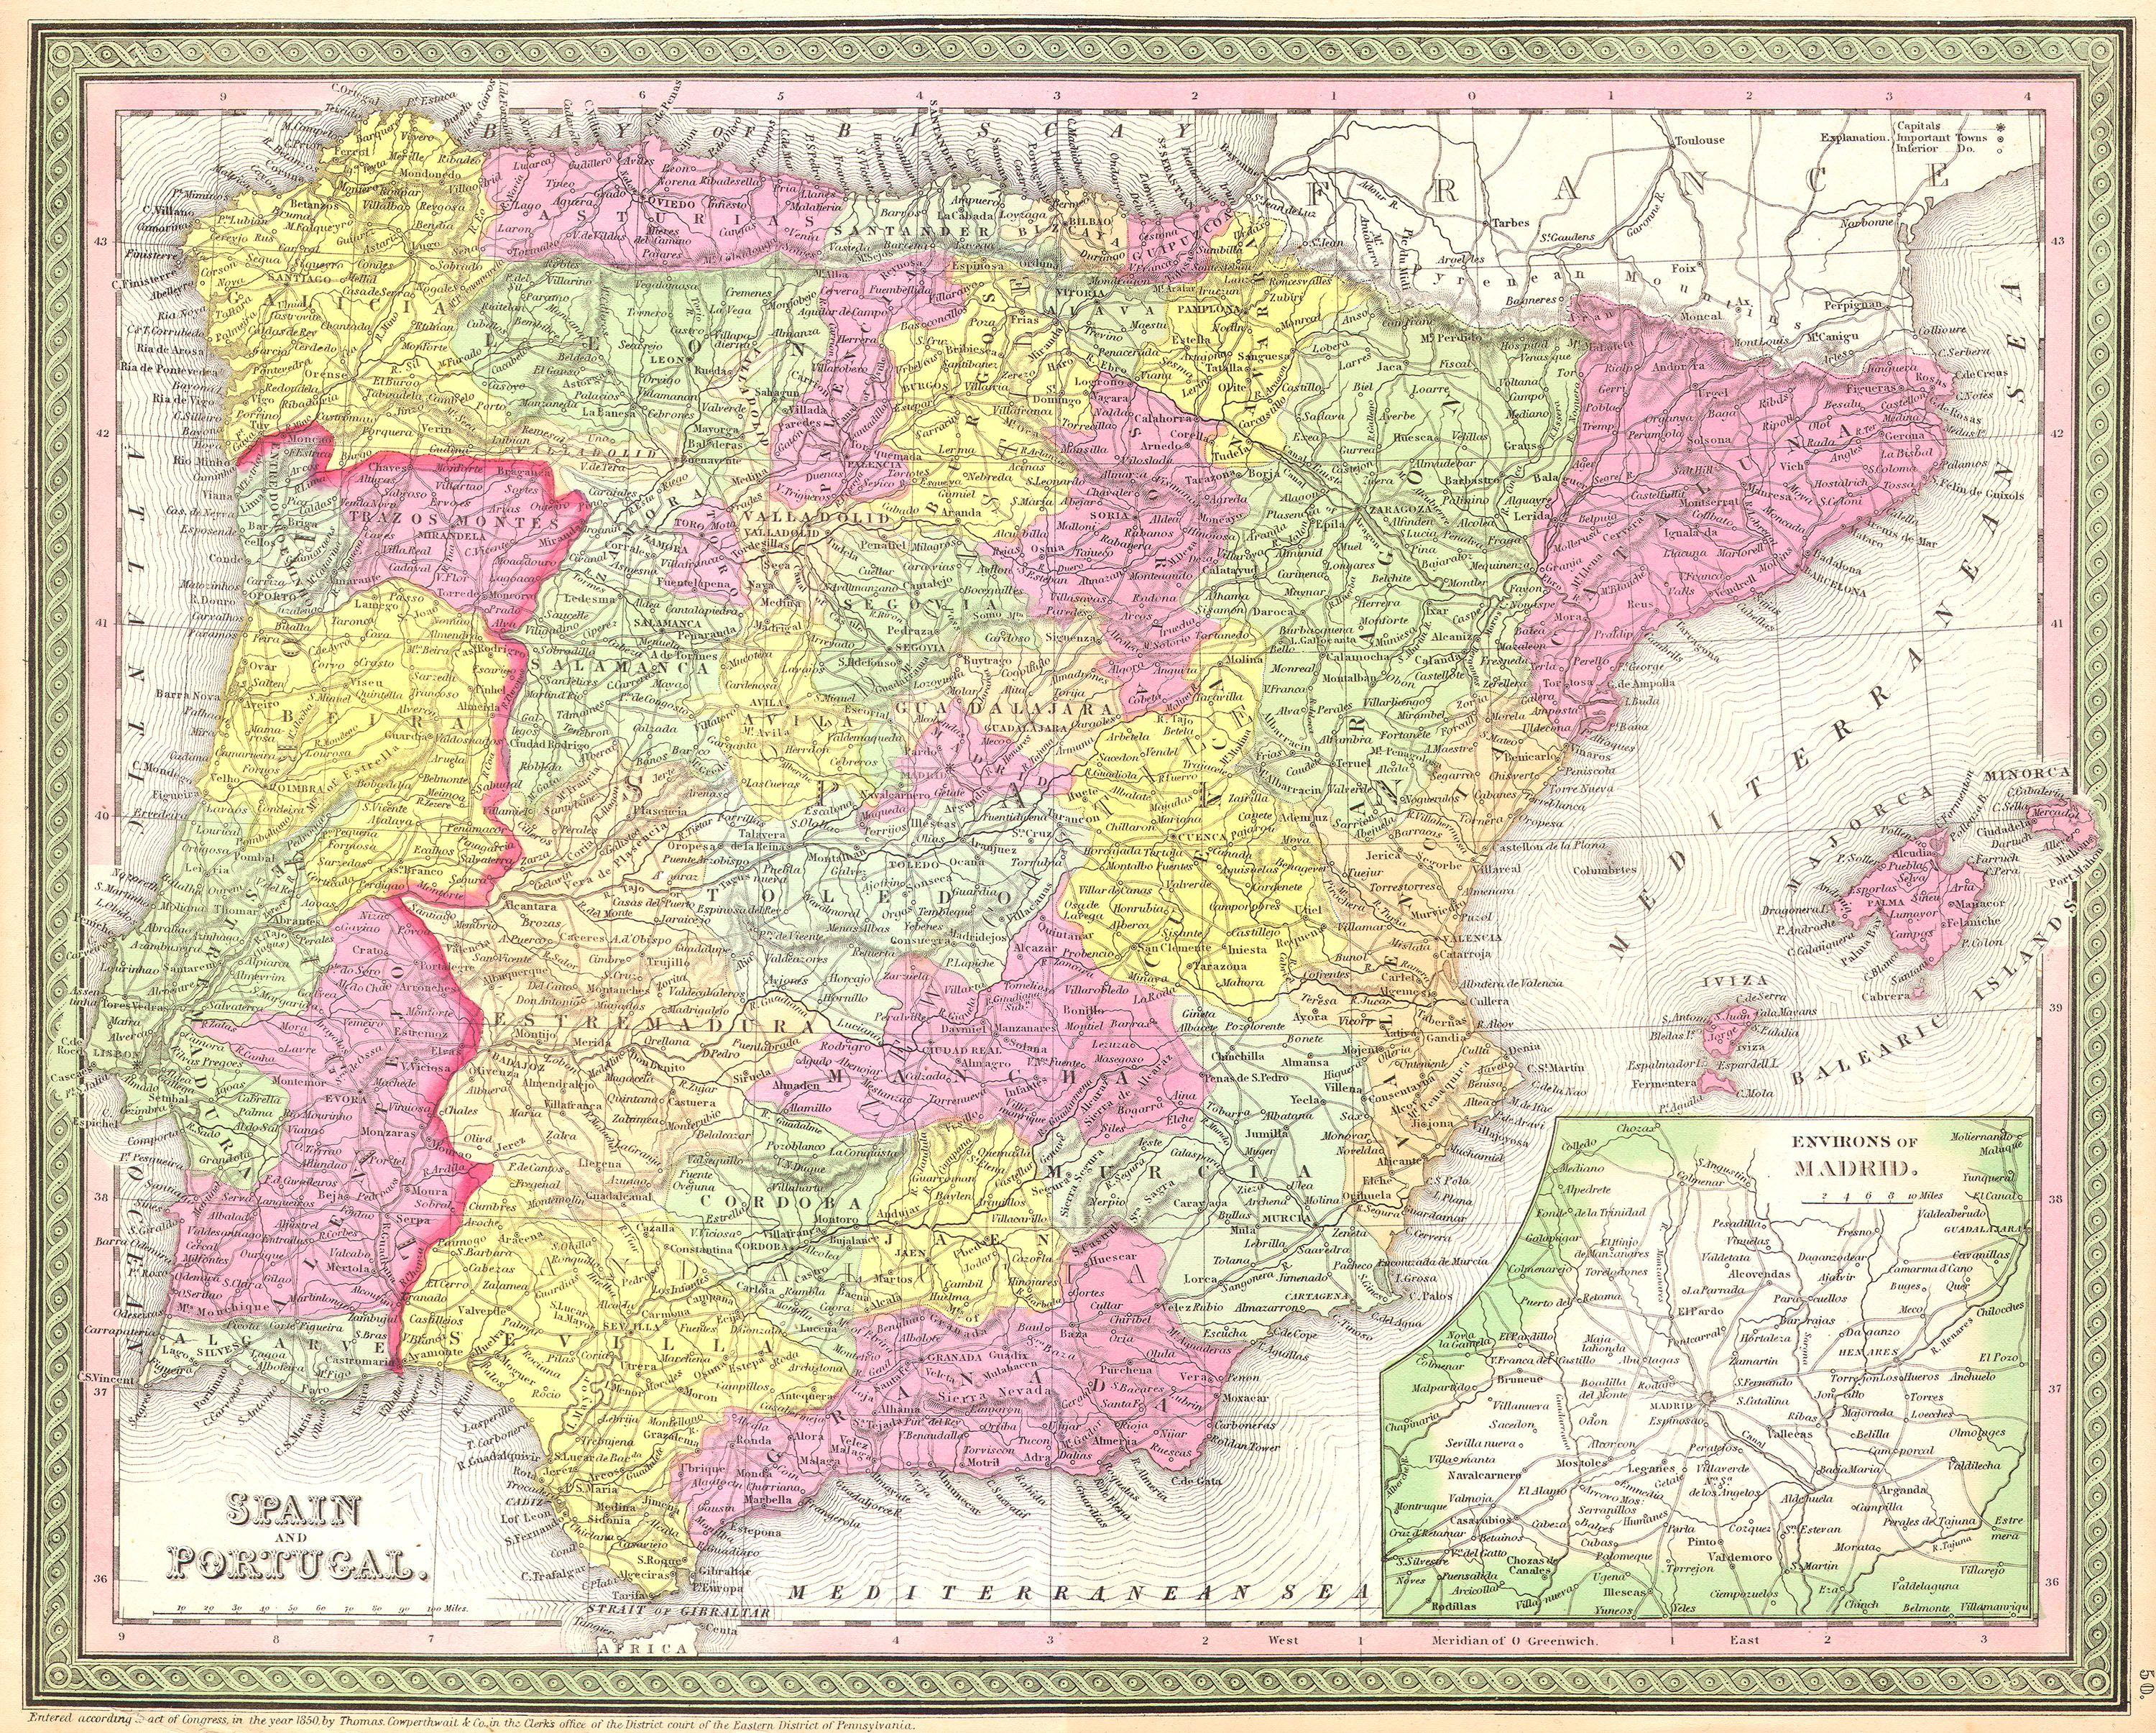 Map Of Spain Jpg.File 1850 Mitchell Map Of Spain And Portugal Geographicus Spain